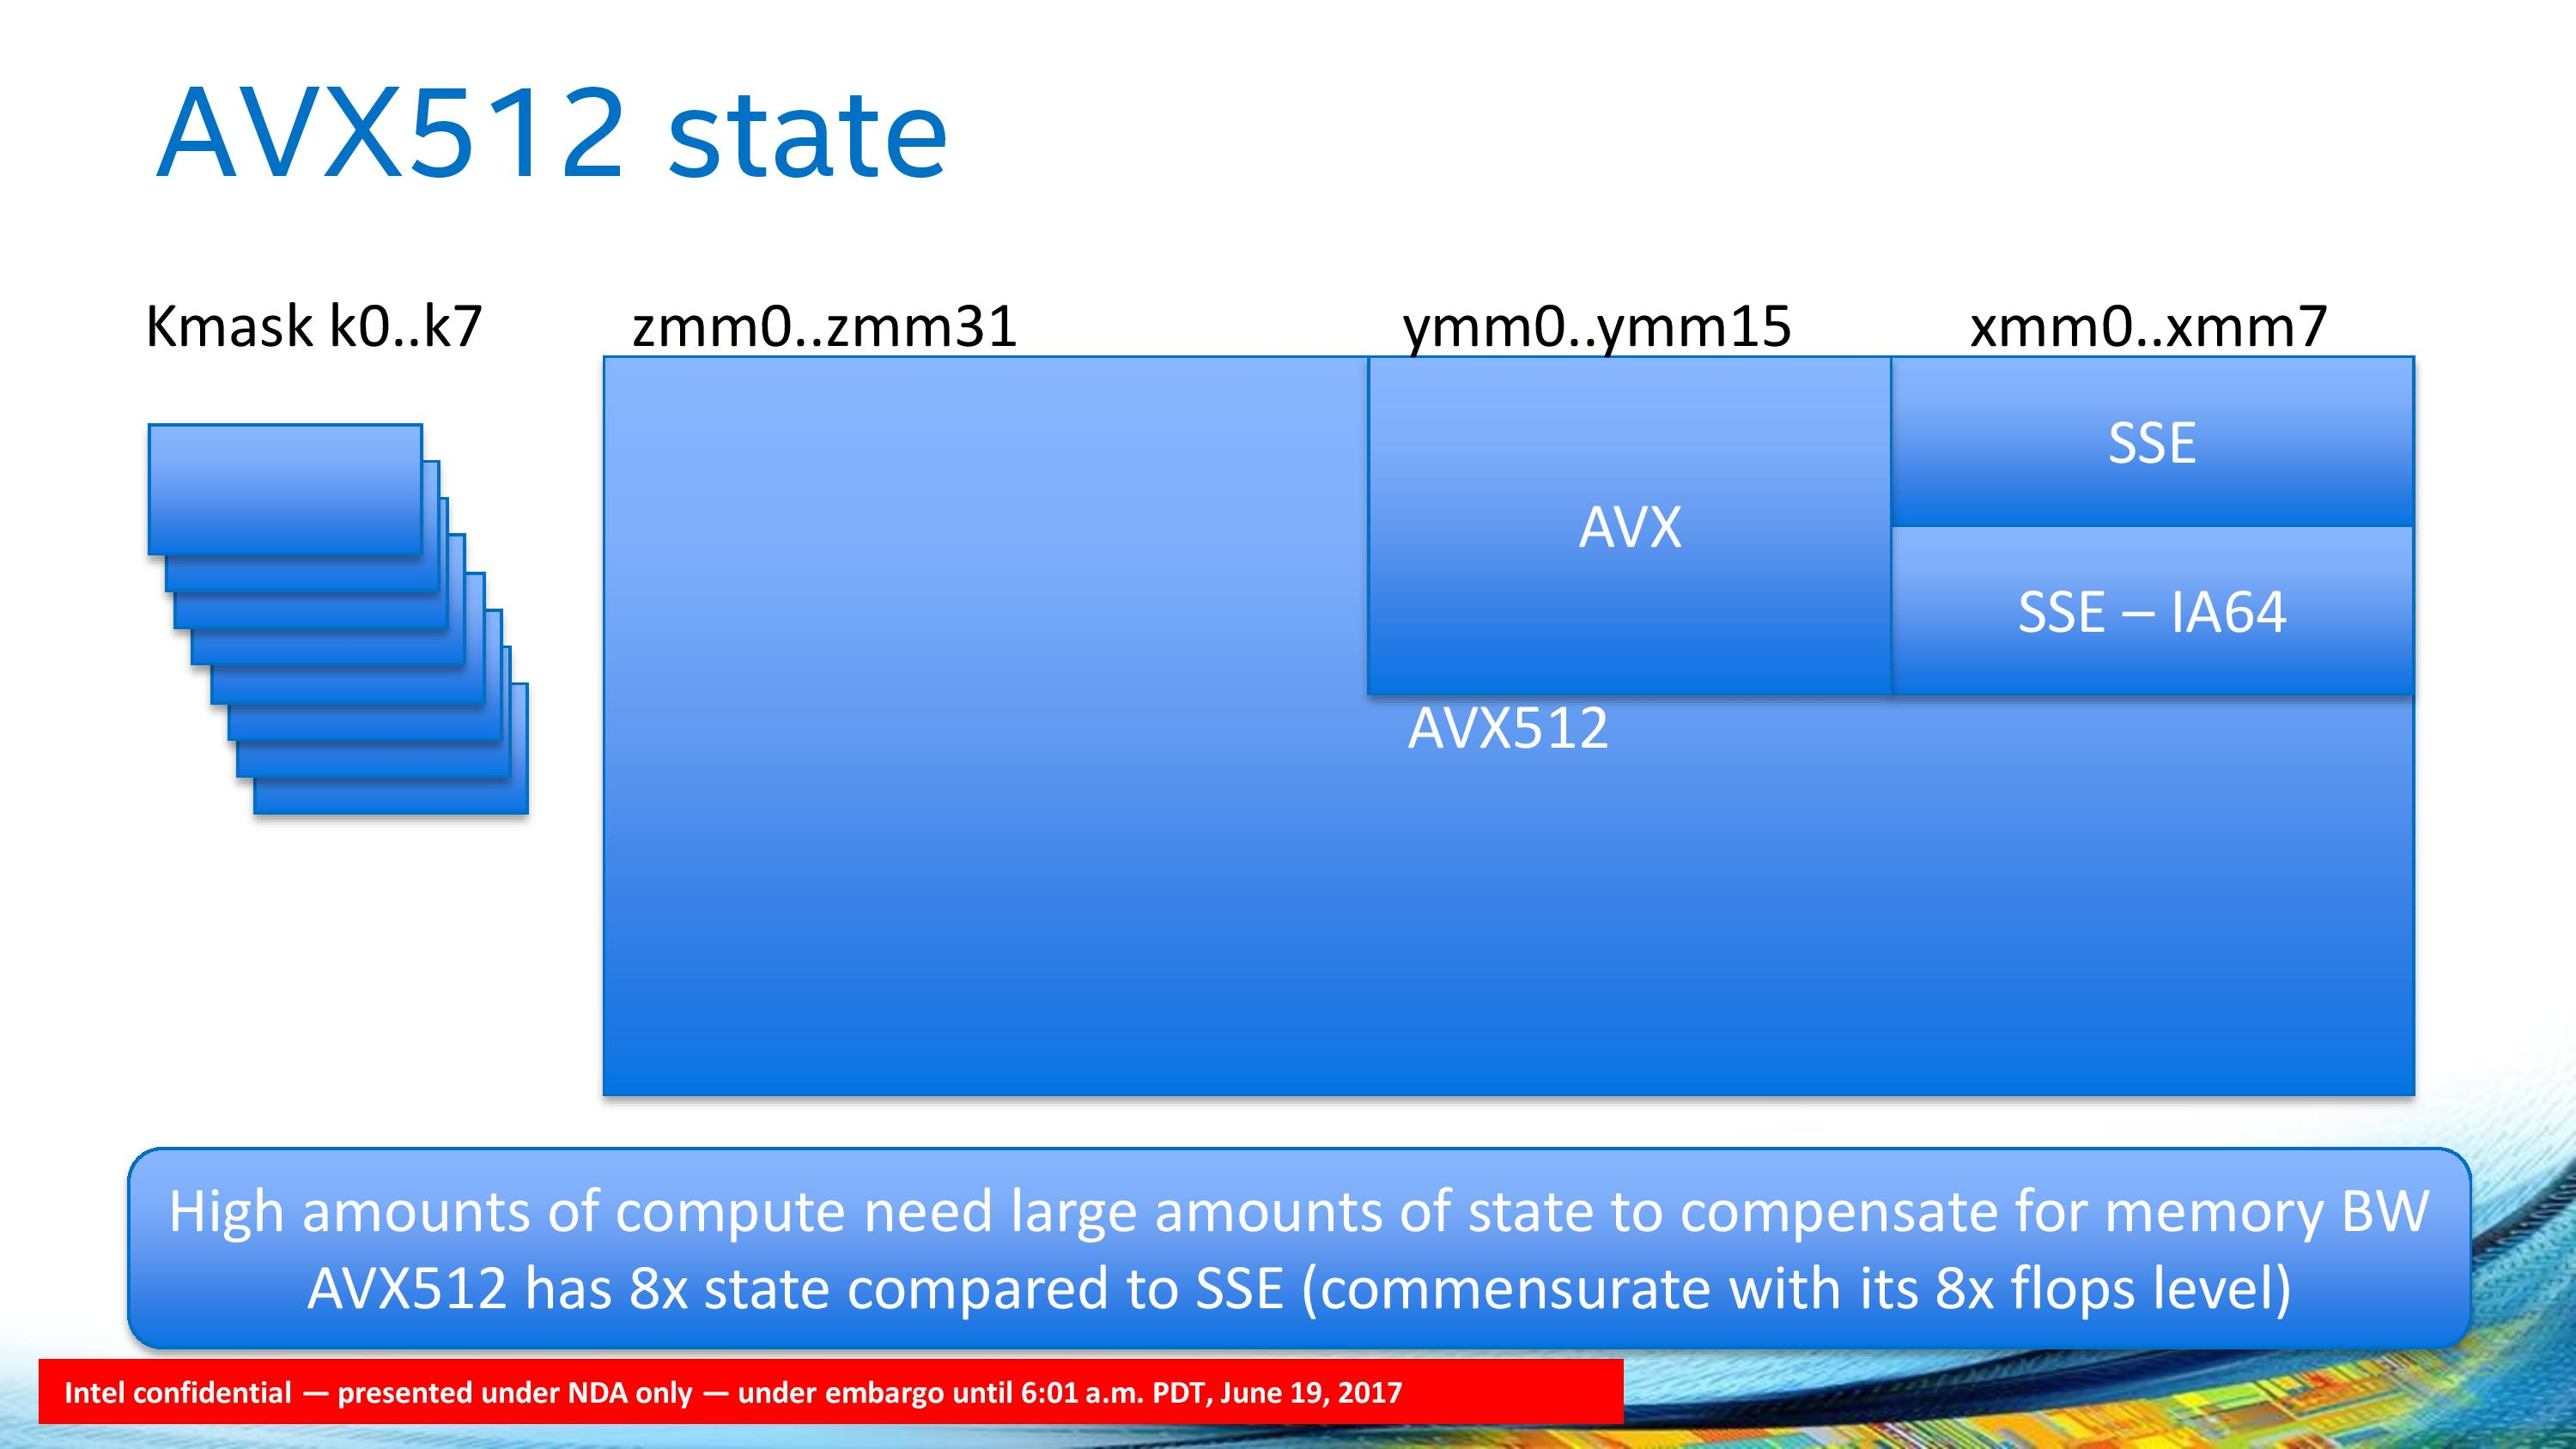 The AVX-512-F unit supports 512-bit INT/FP calculations from 32 zmm (zmm0  to zmm31) registers, supported by 8 kmask (k0 to k7).